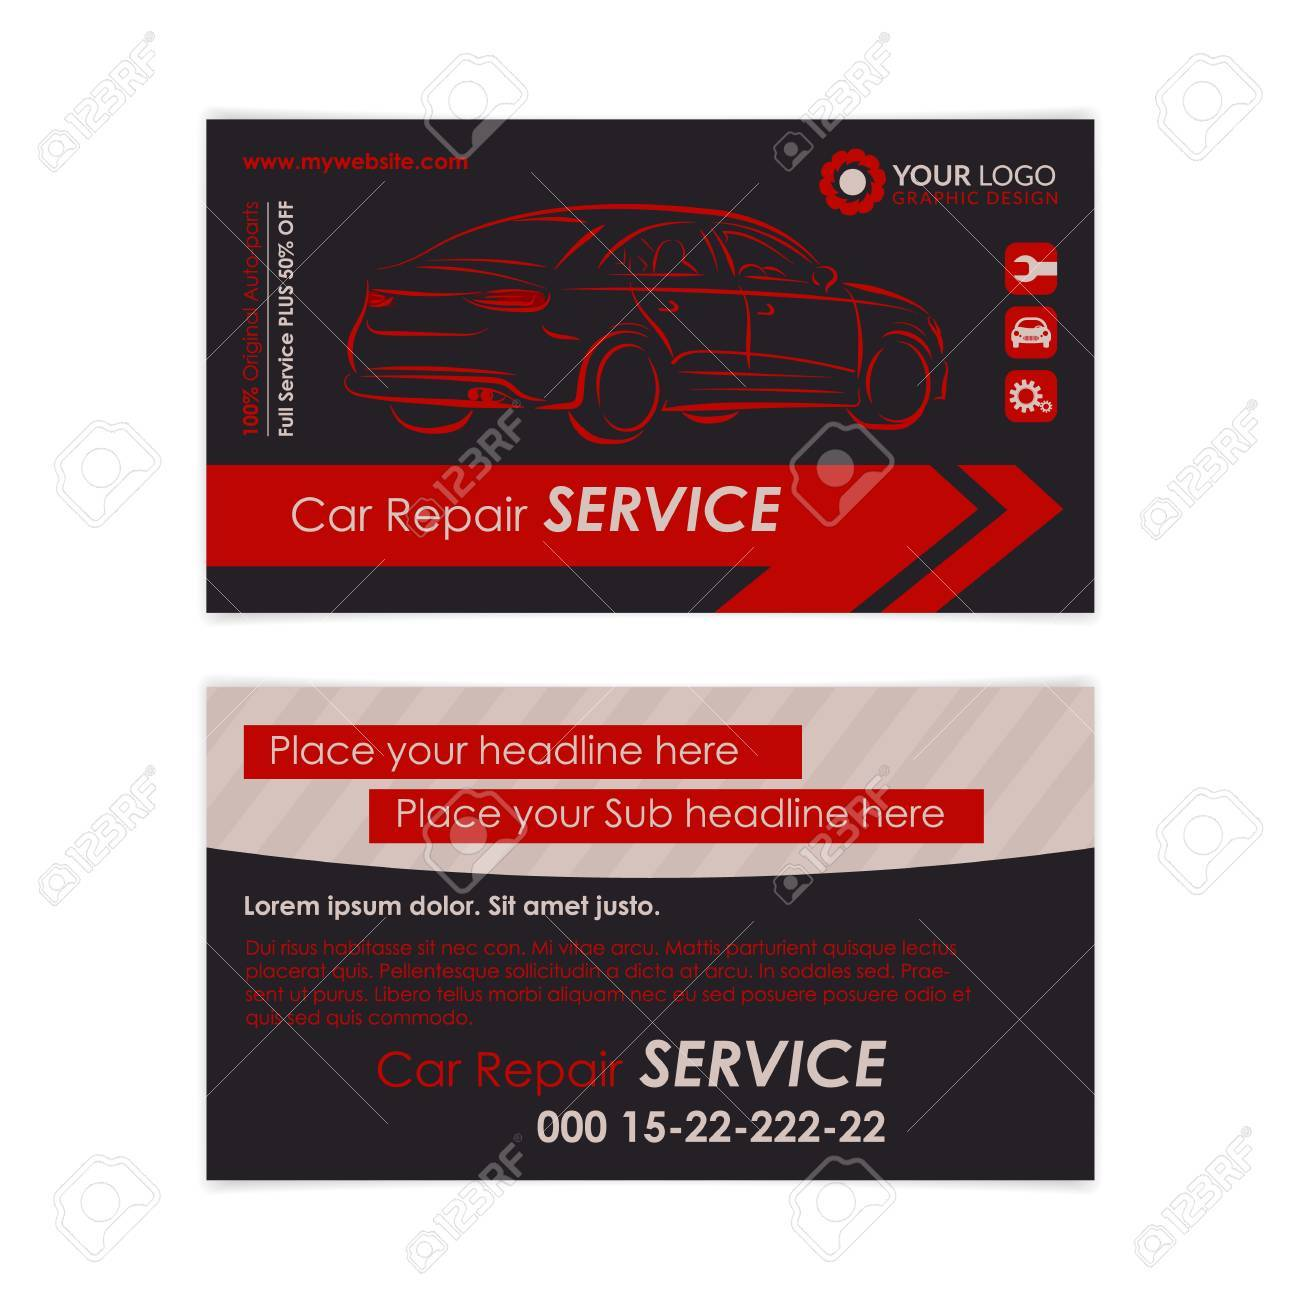 Auto Repair Business Card Template. Create Your Own Business ...